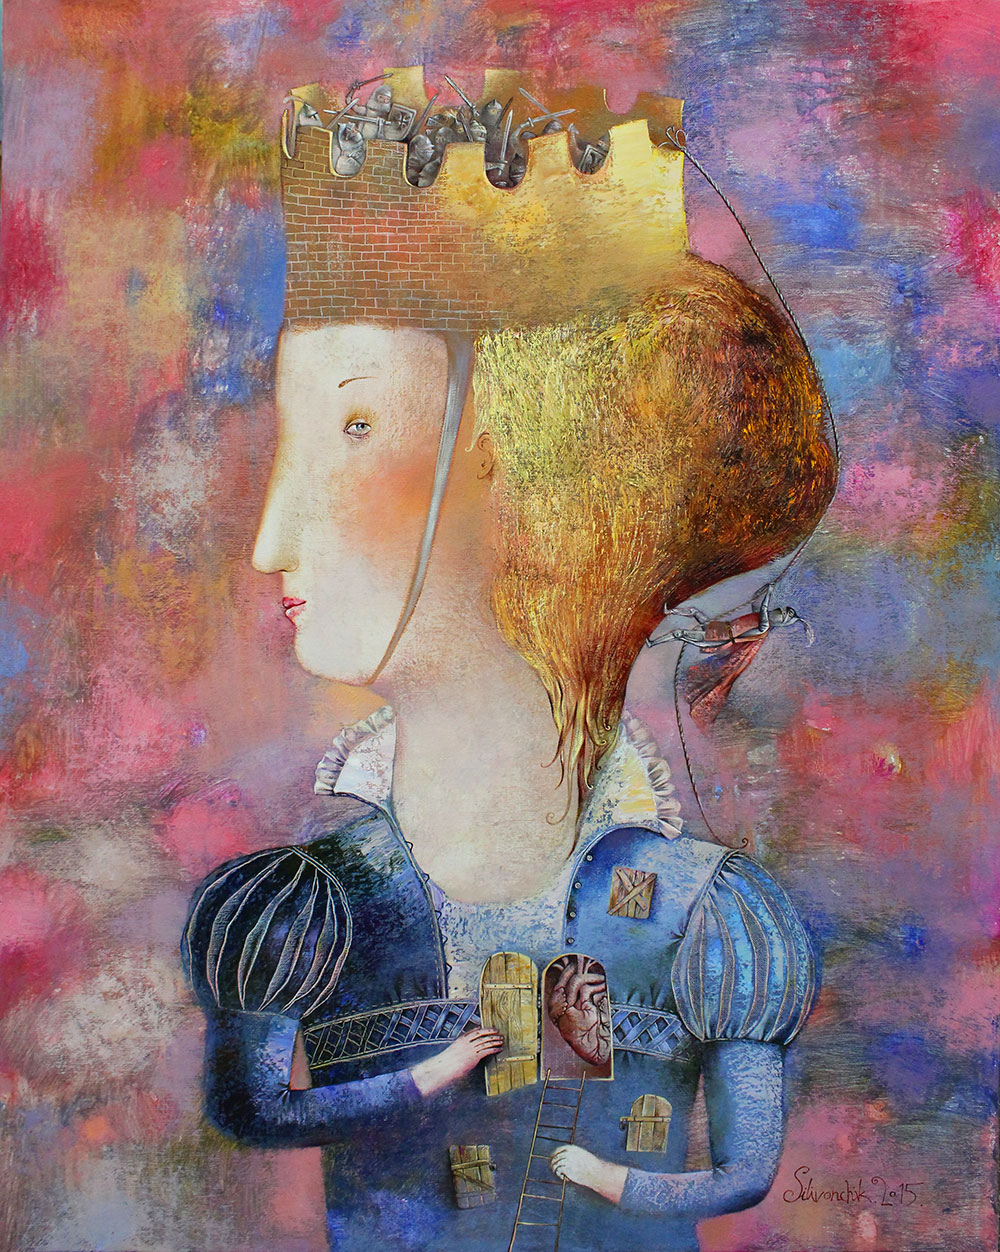 Knights of My Heart, 2015, Oil on Canvas, 39 x 32 in (100 x 80 cm)